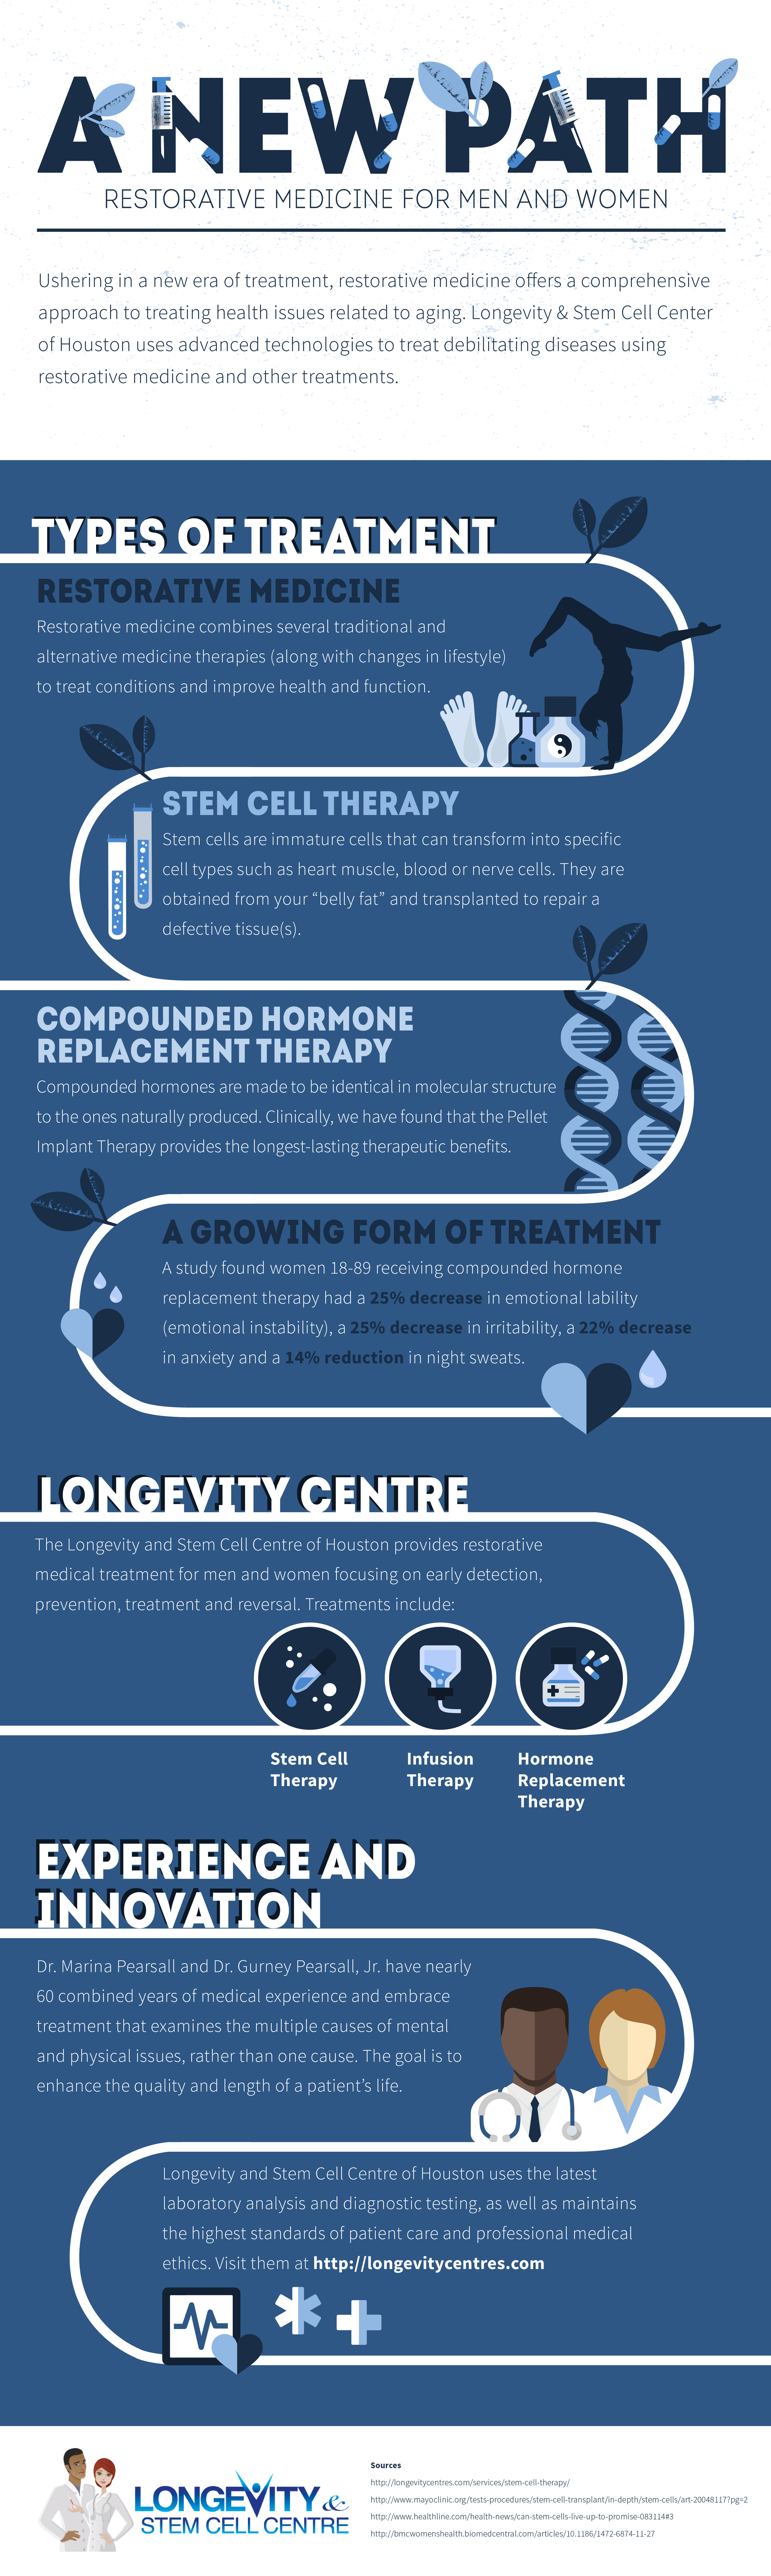 Longevity offers a variety of restorative medicines including stem cell therapy, hormone replacement therapy and infusion therapy.